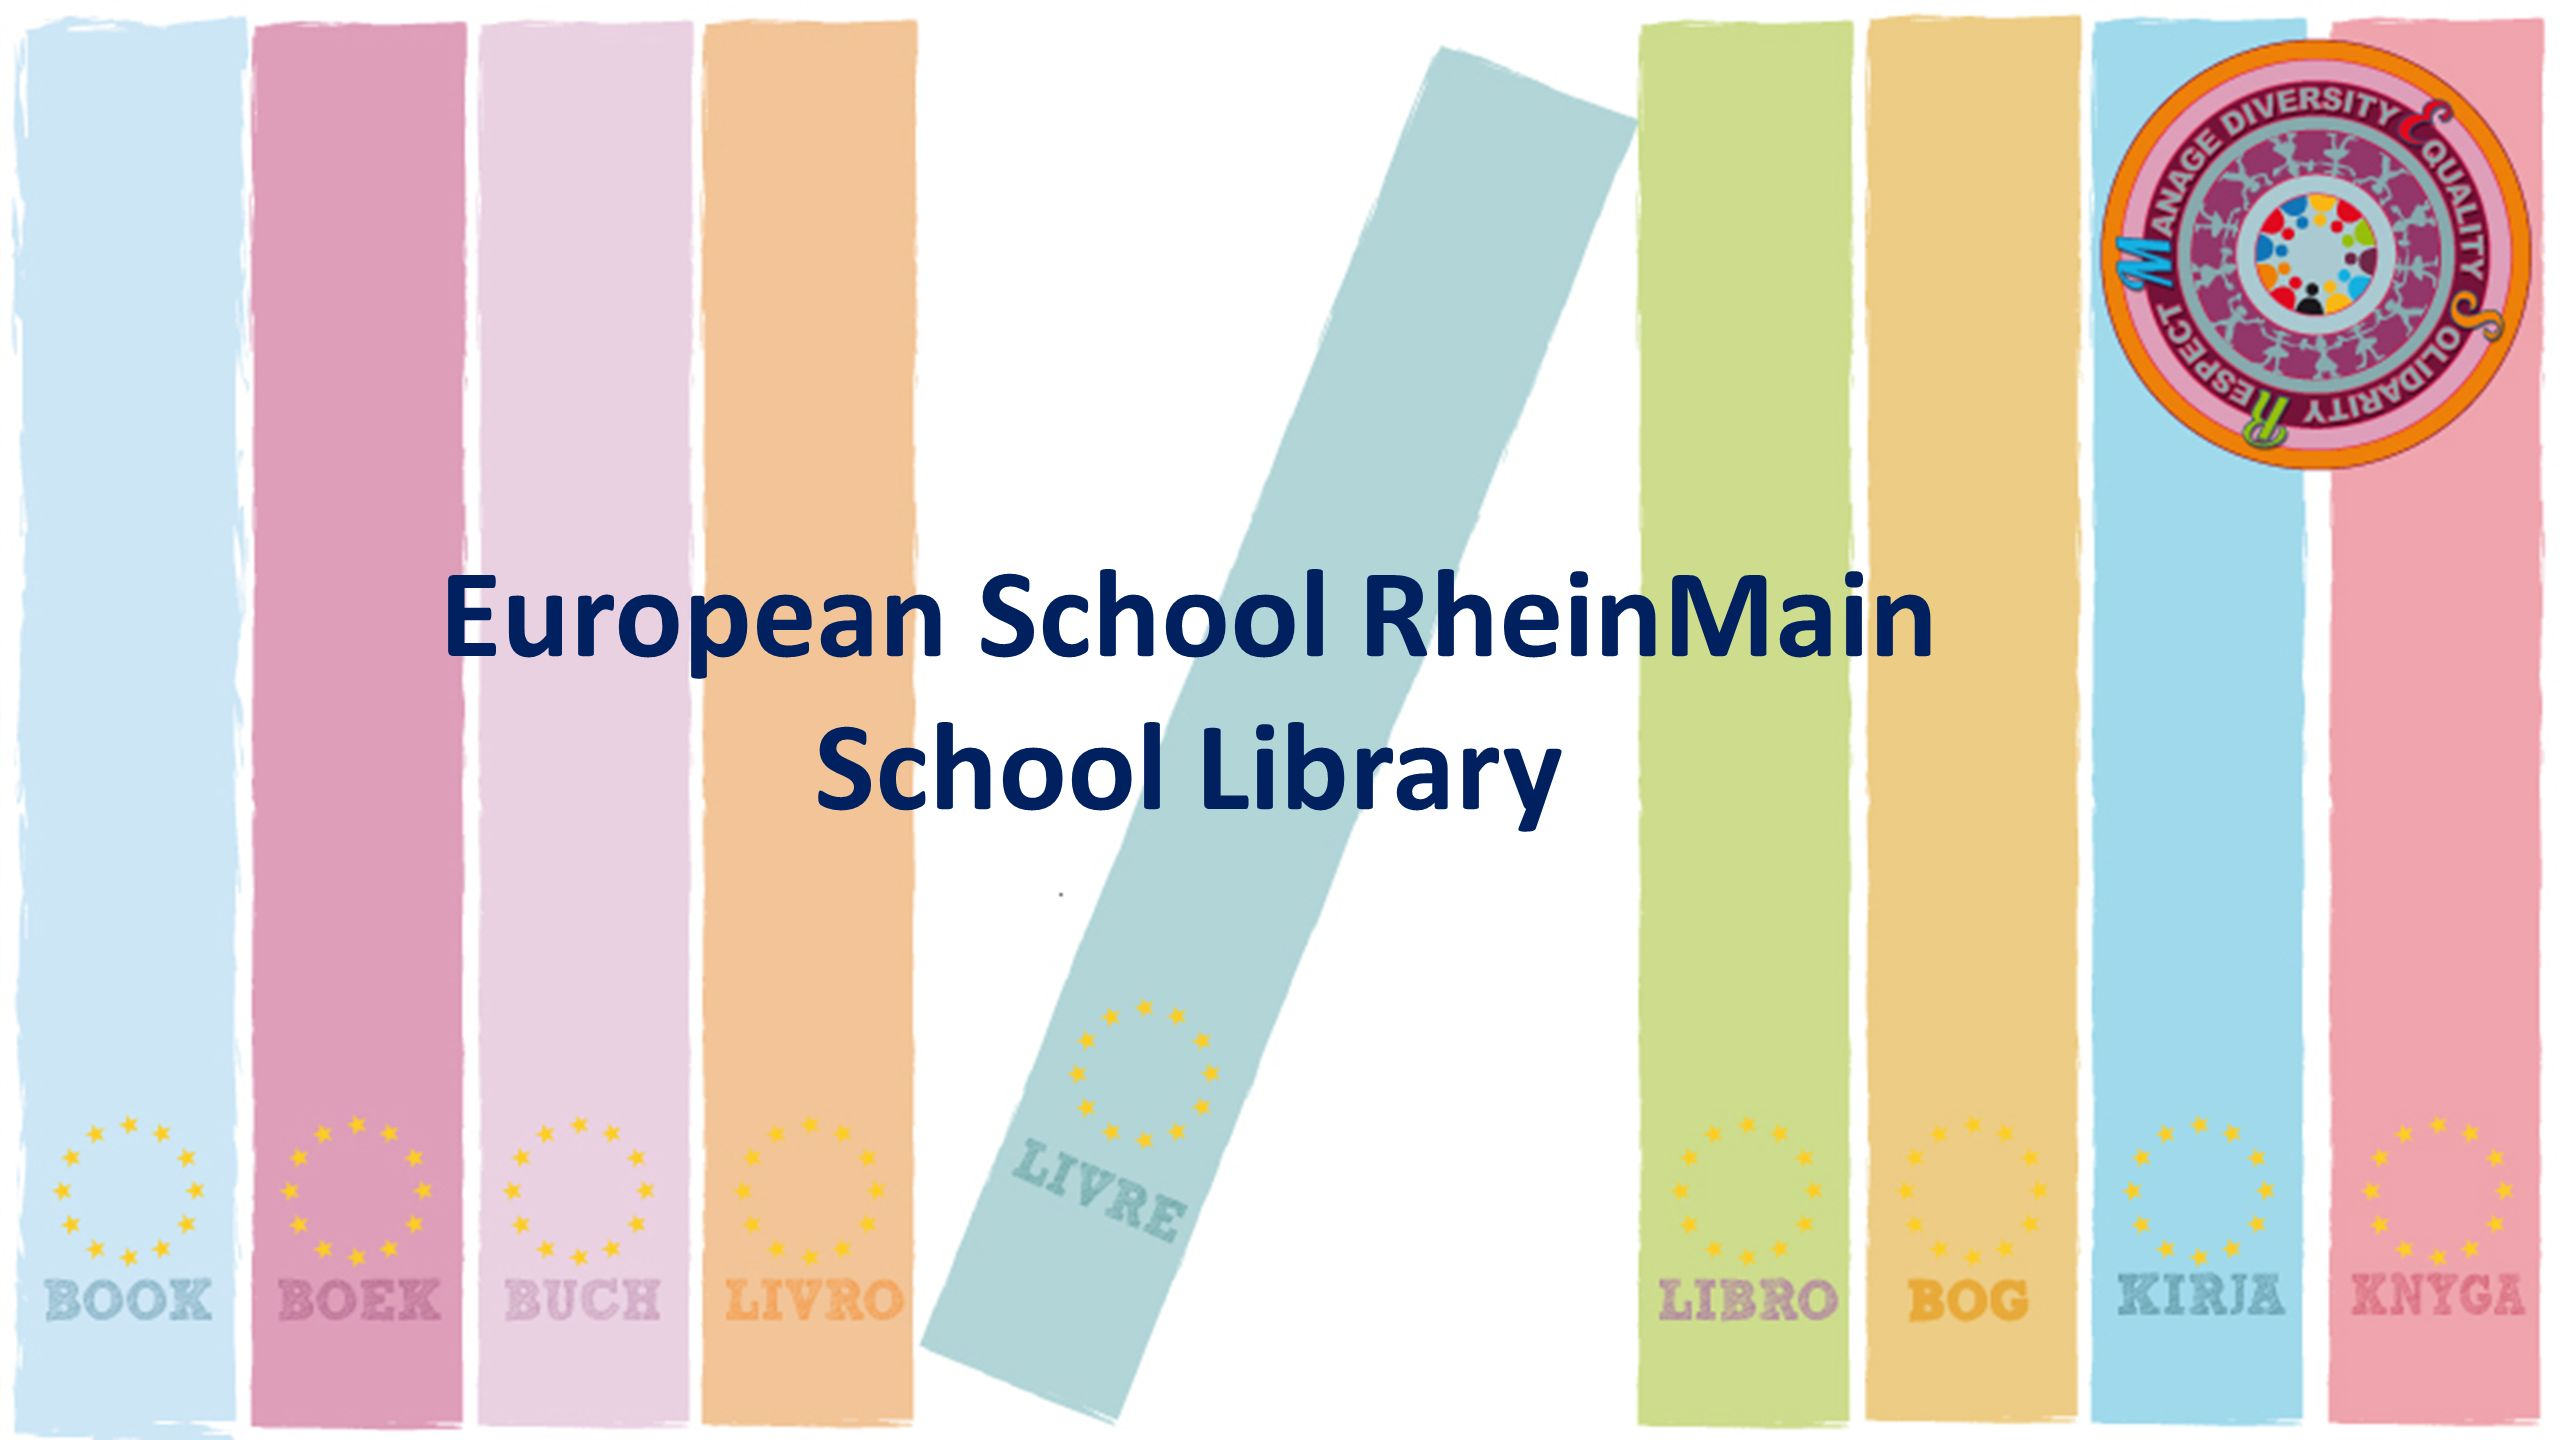 European School RheinMain